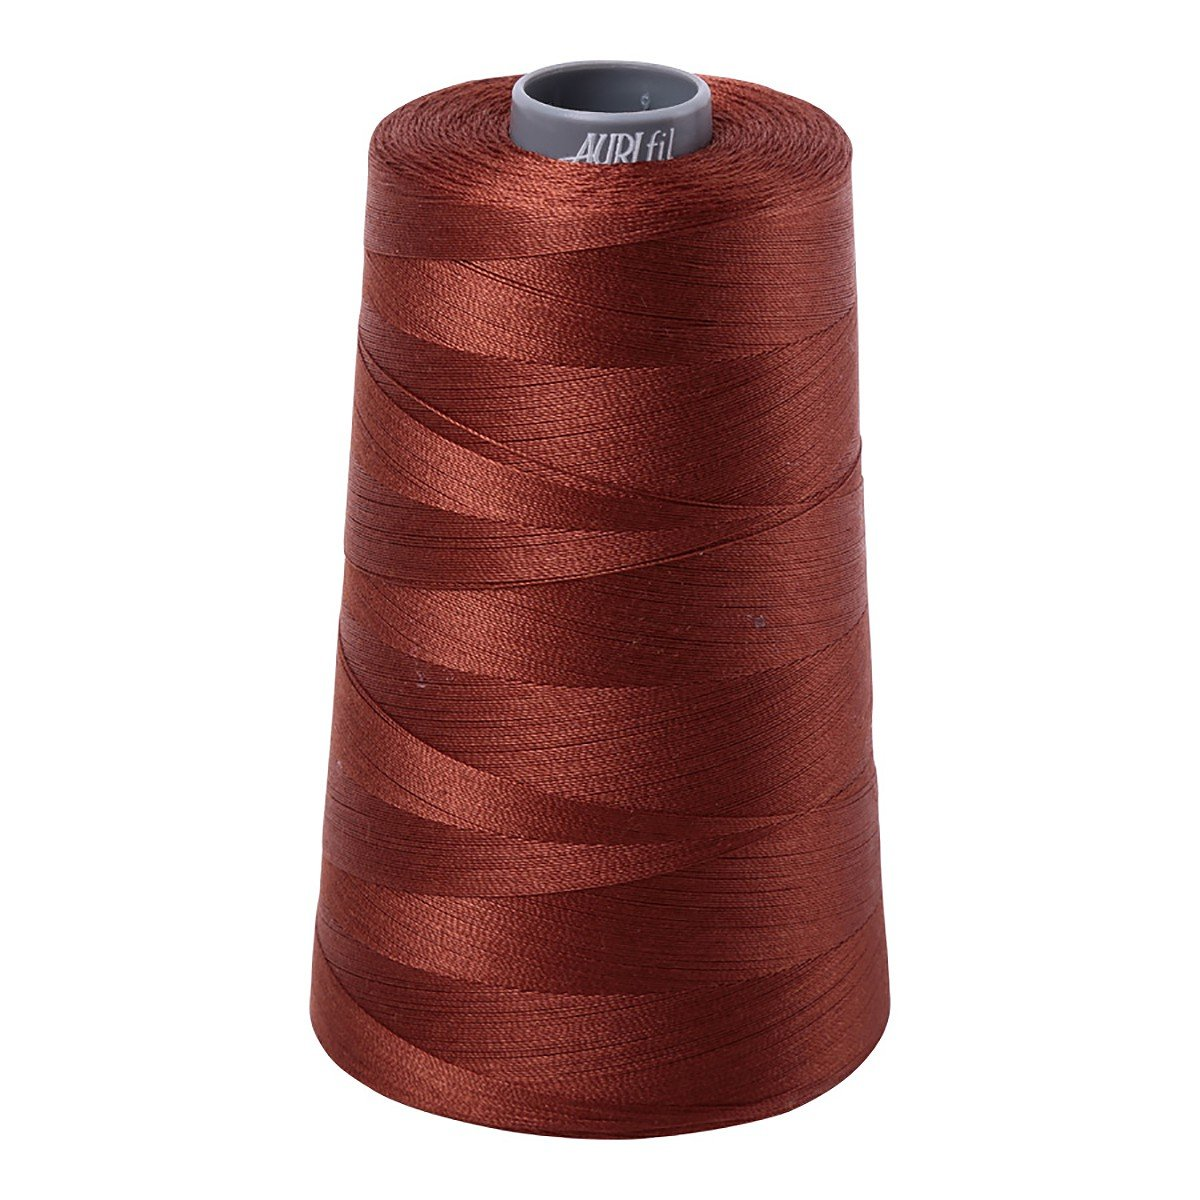 Mako (Cotton) Embroidery Thread 28wt 3609yds Copper Brown